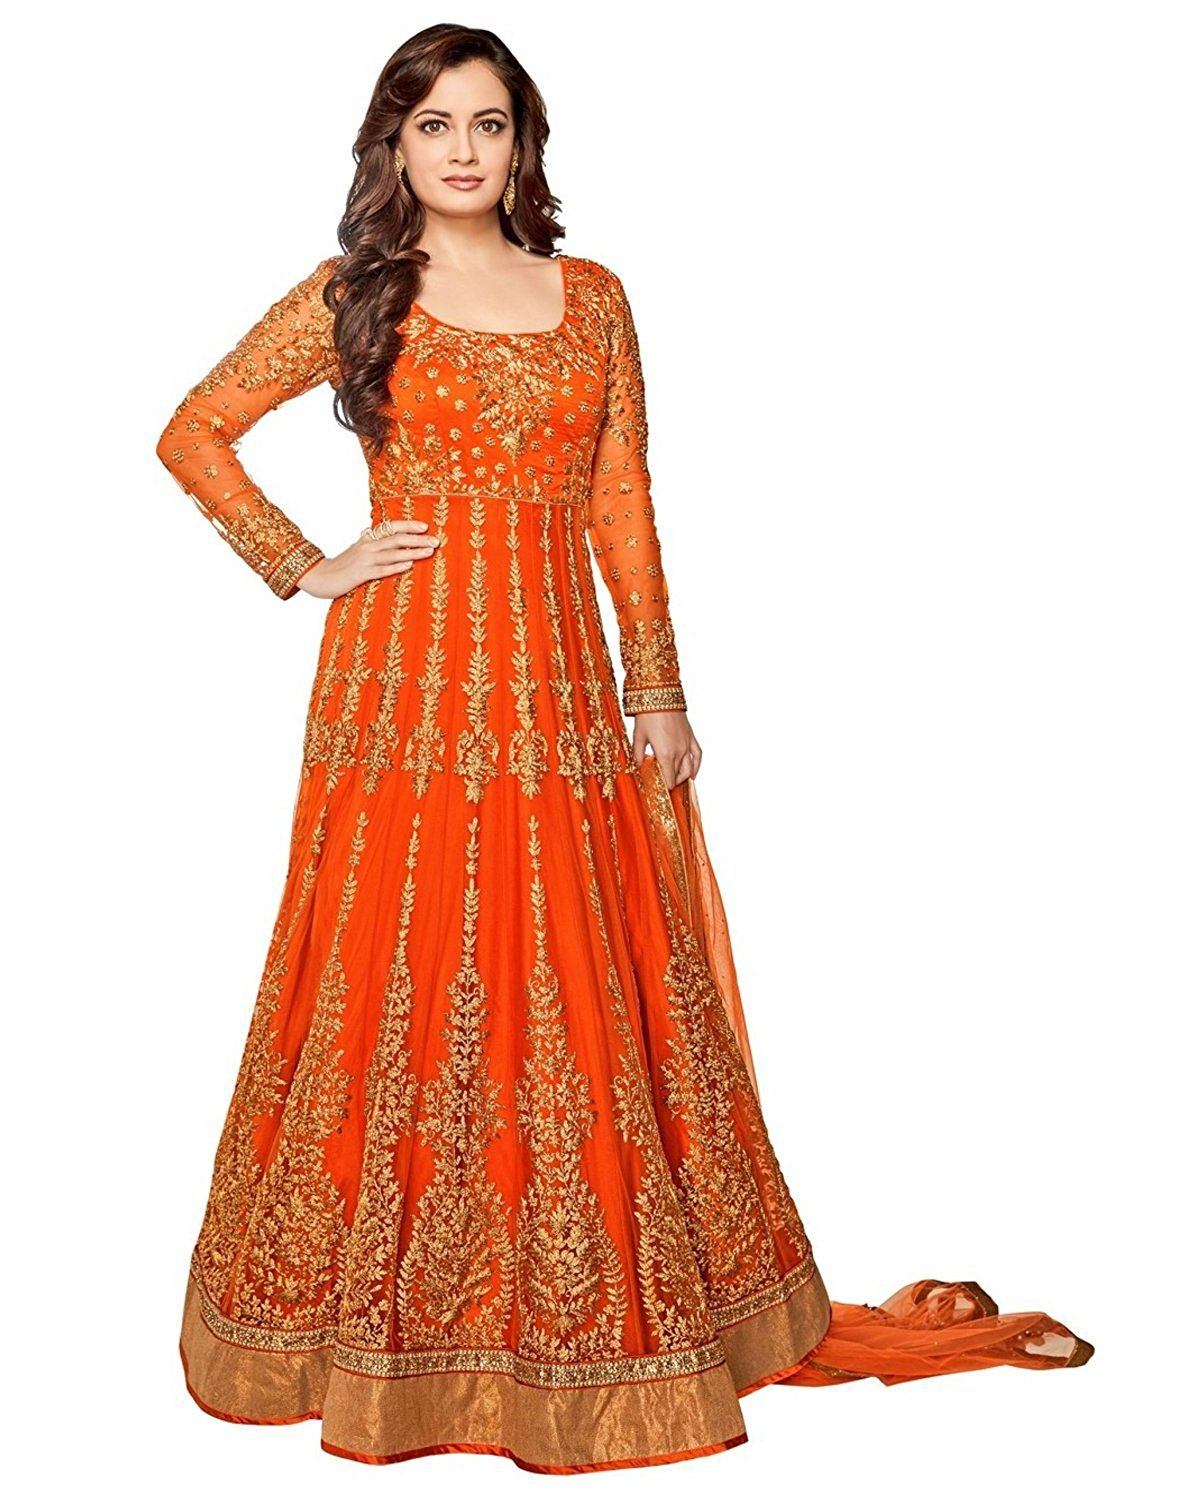 Jesti Designer Women S Net Dress Material Orange Free Size